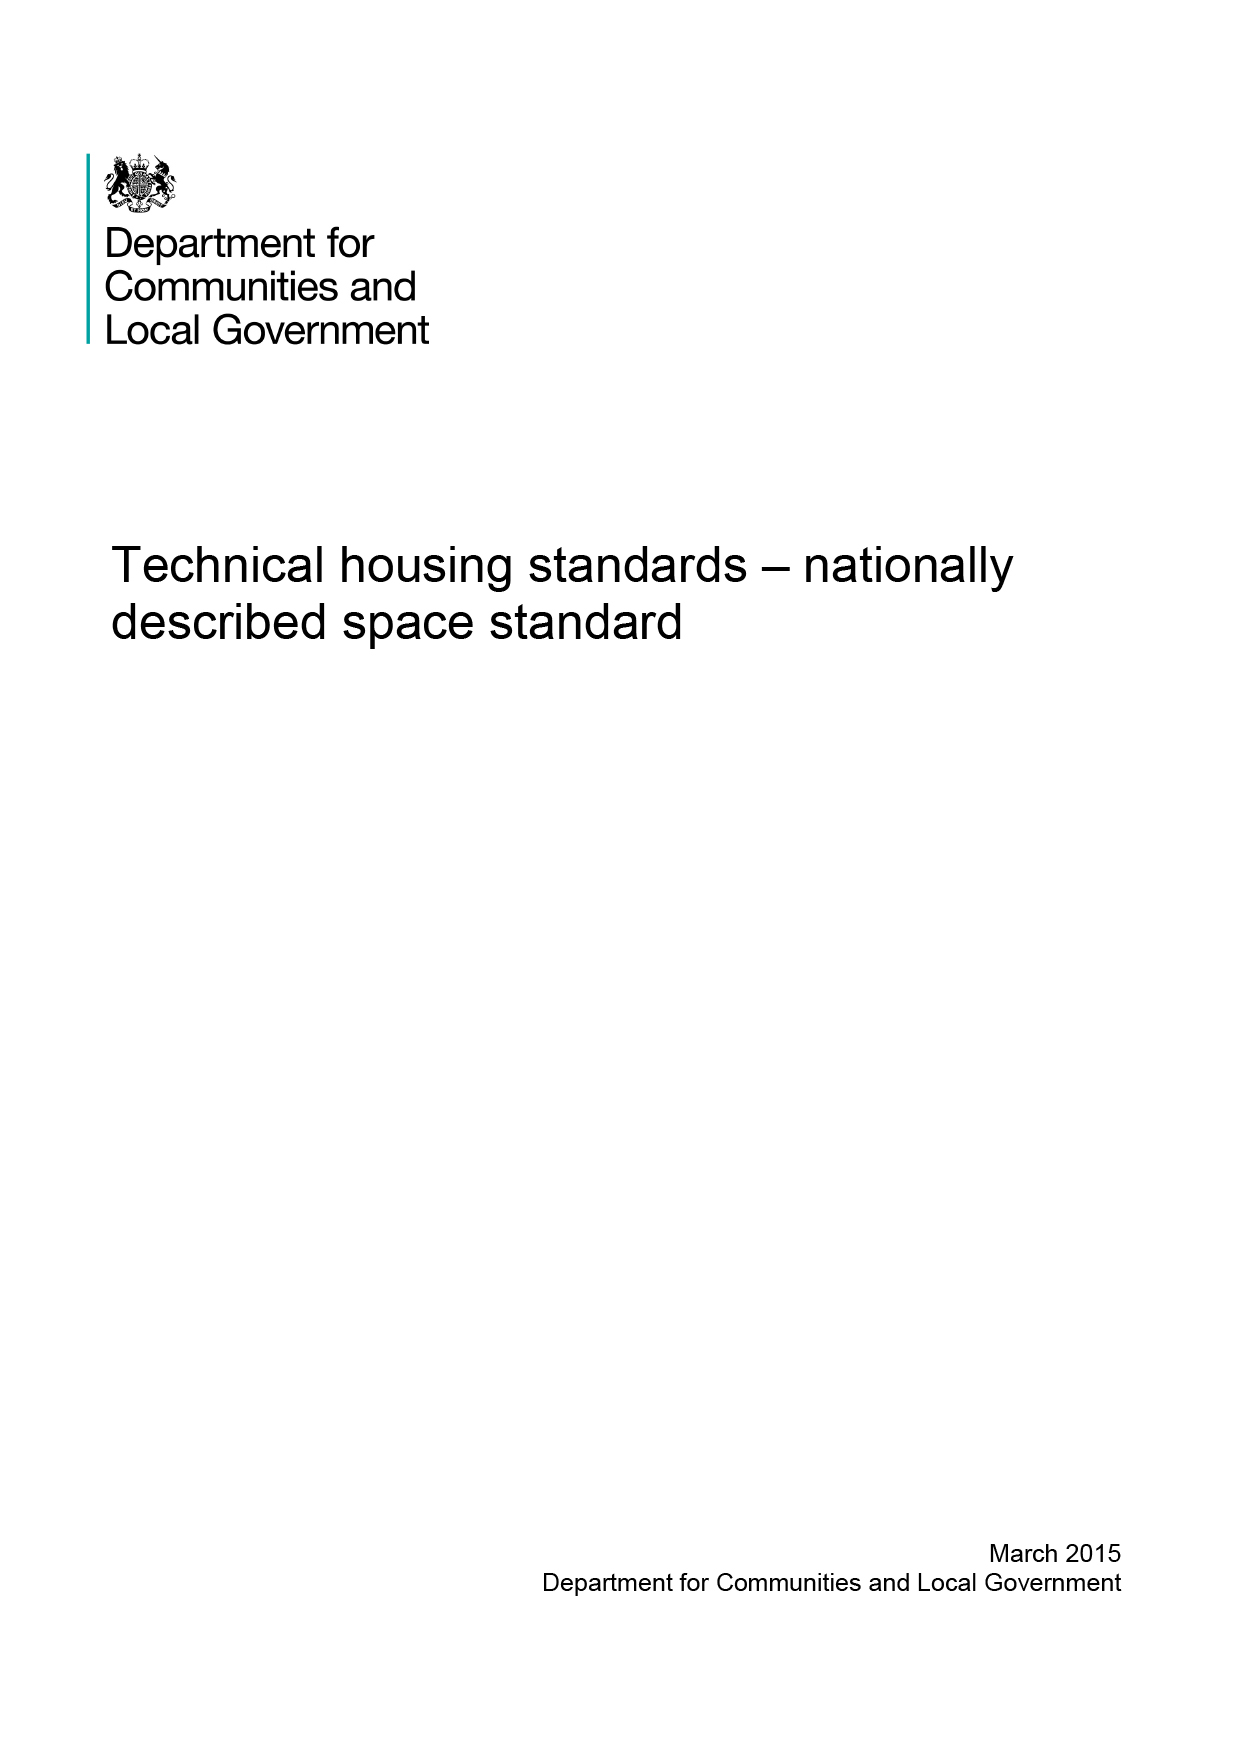 Technical housing standards – nationally described space standard